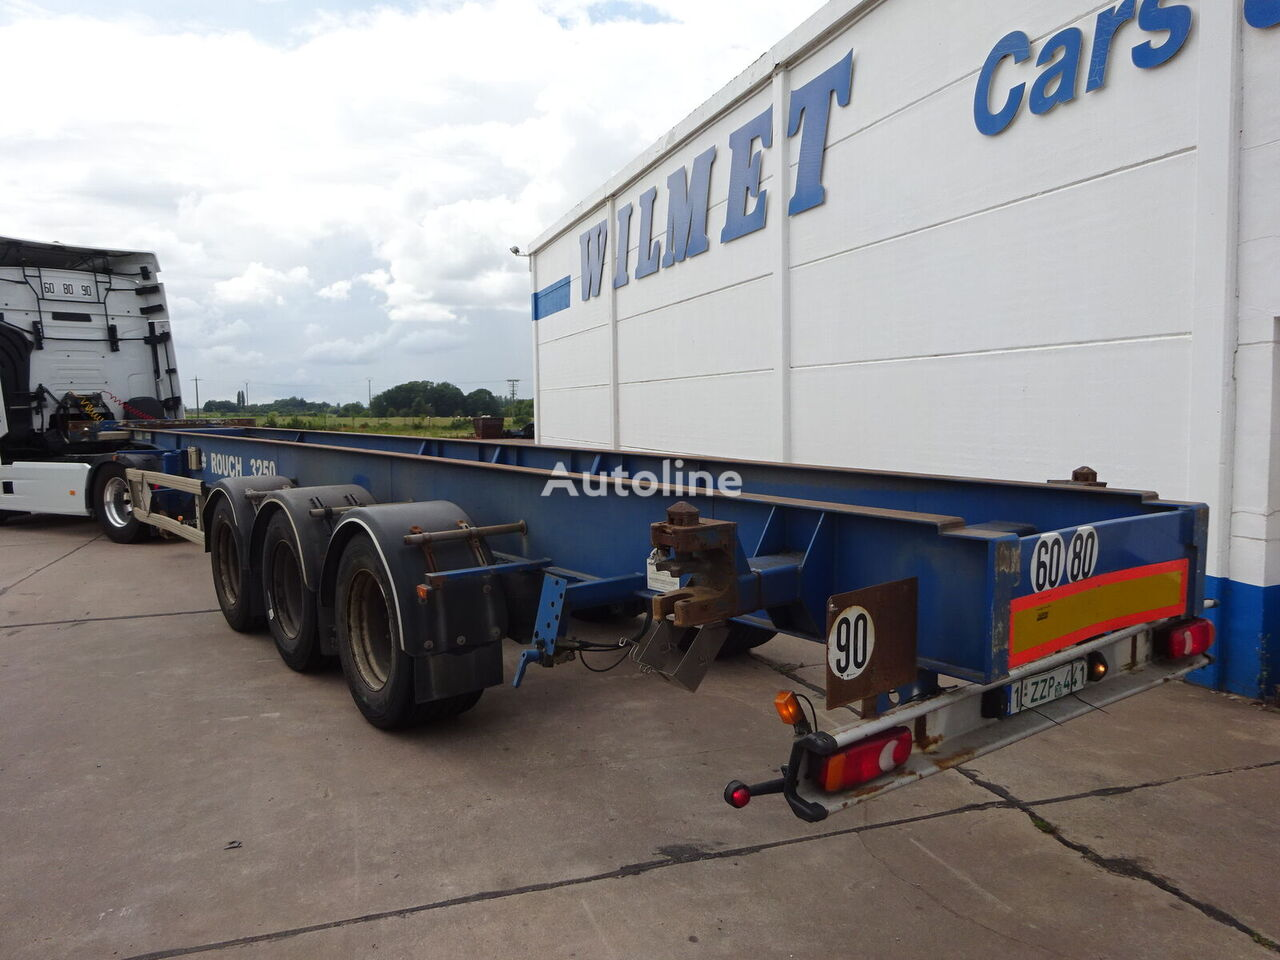 ASCA container chassis semi-trailer